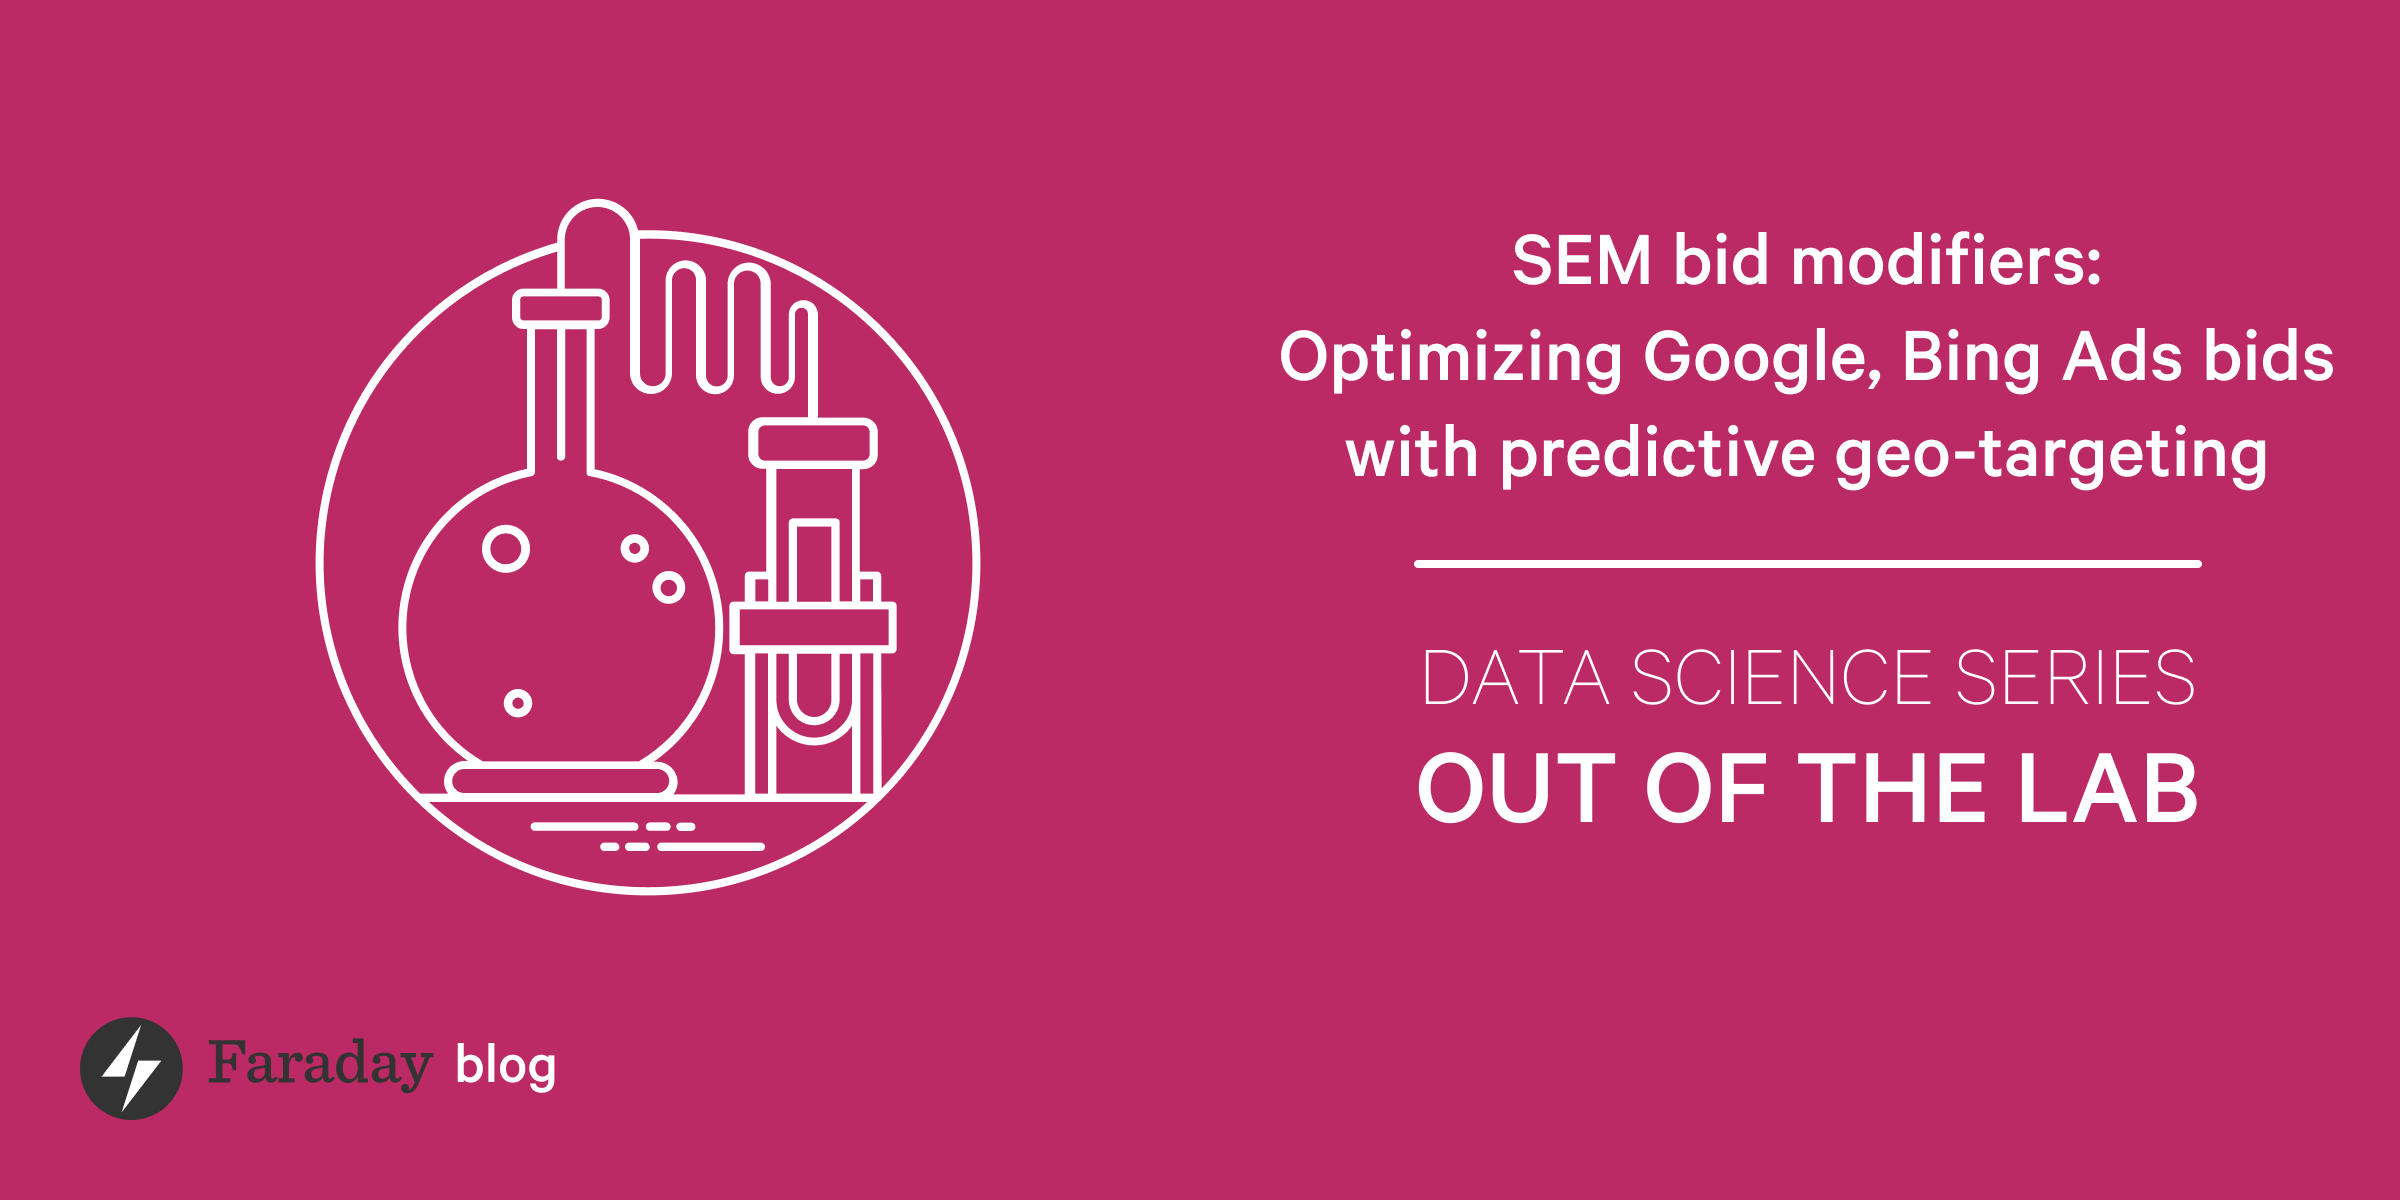 SEM bid modifiers: Optimizing Google, Bing Ads bids with predictive geo-targeting